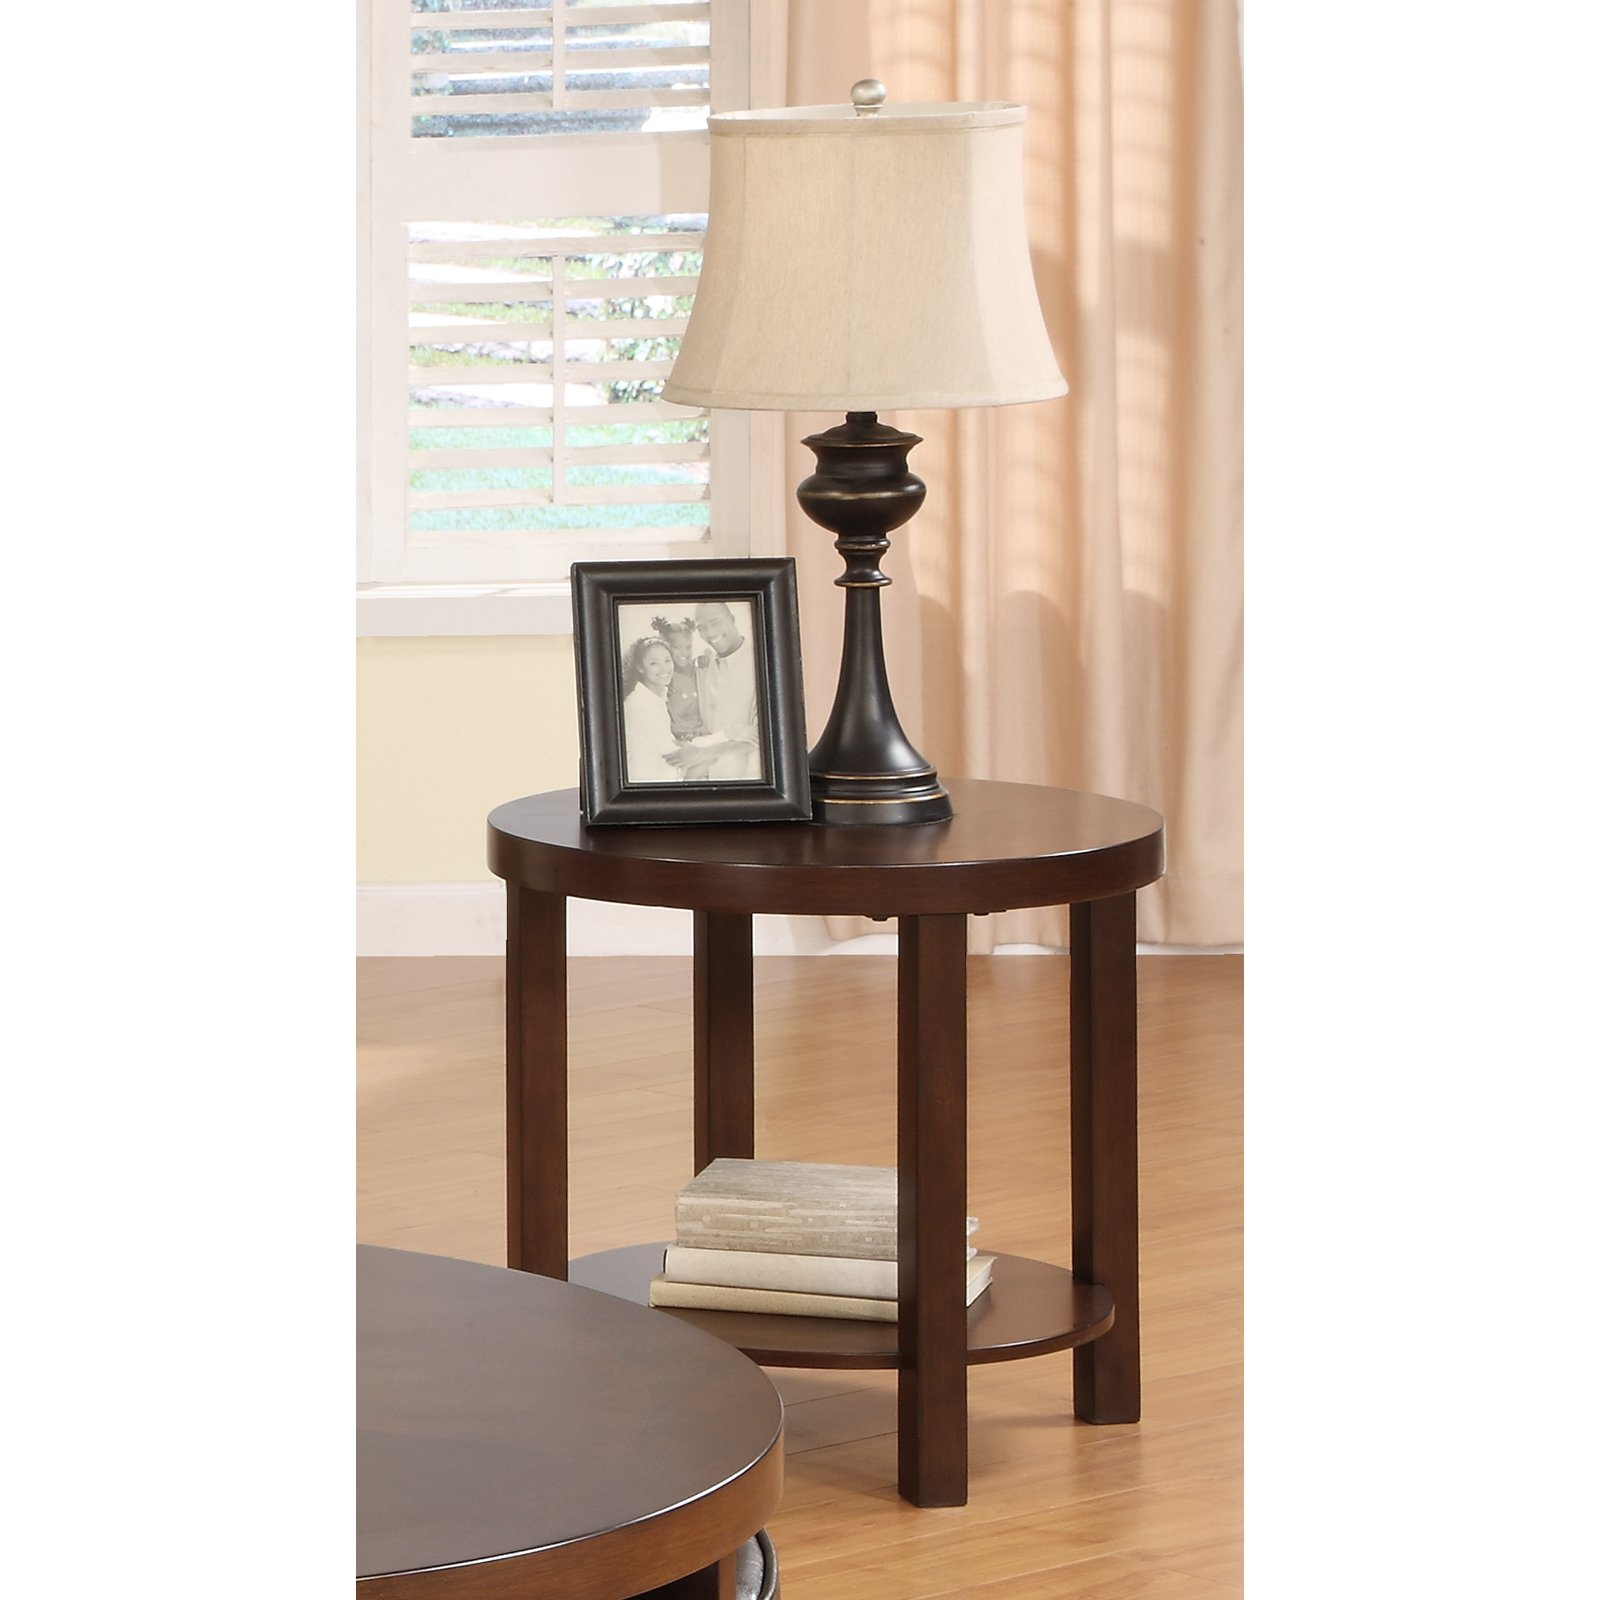 Weston Home Brussel II Round Brown Cherry Wood End Table